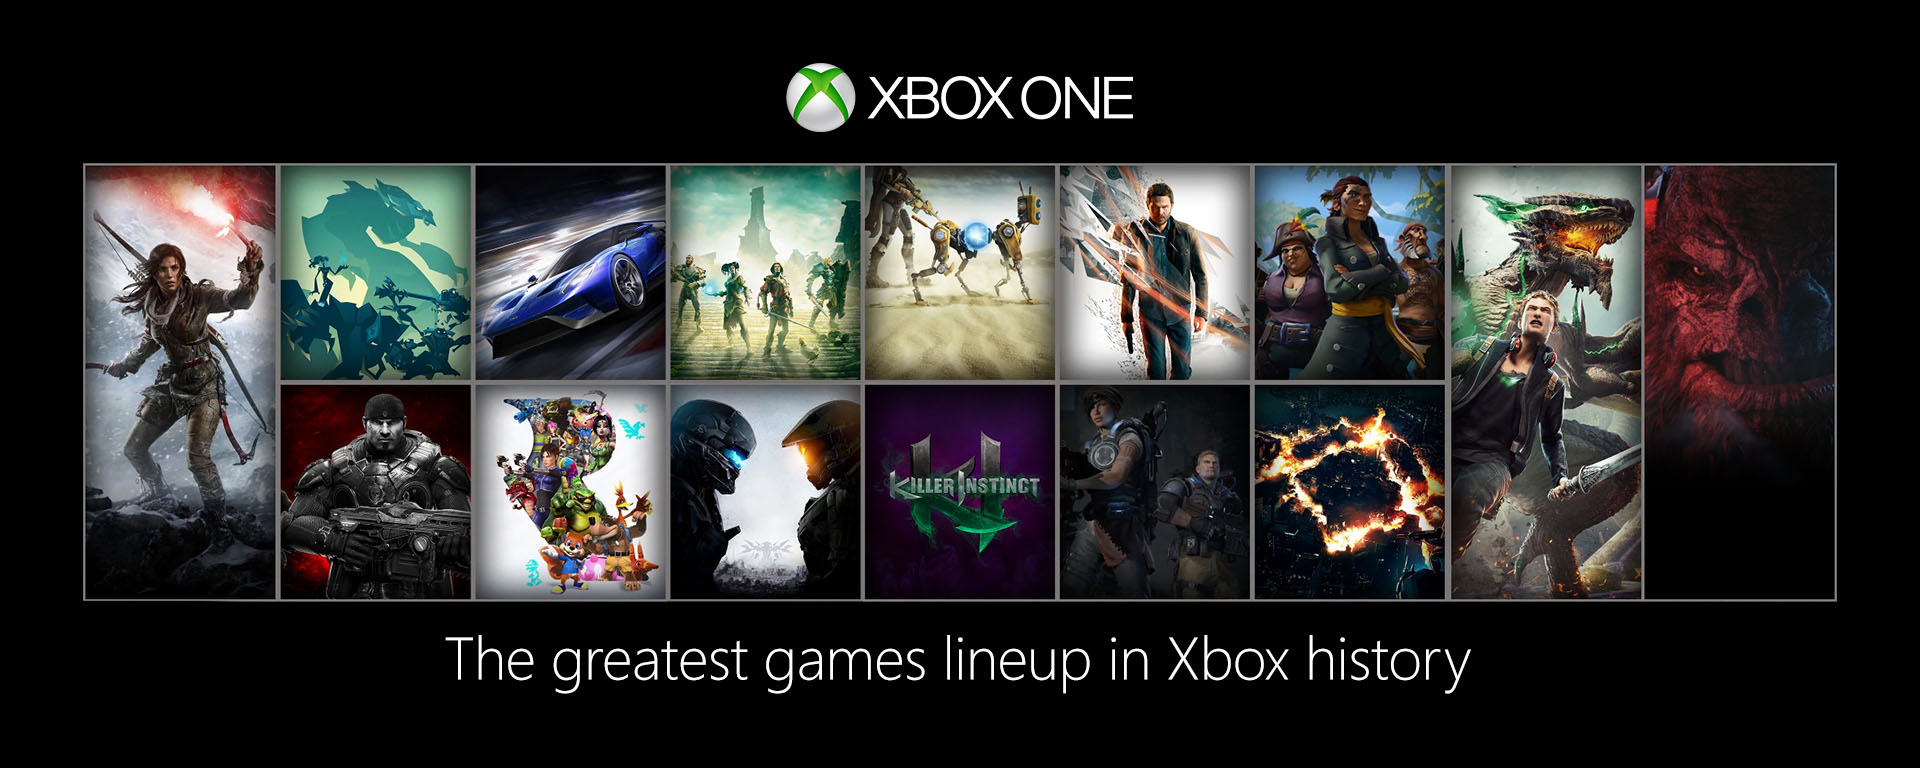 xbox-one-games-line-for-2015-2016.jpg